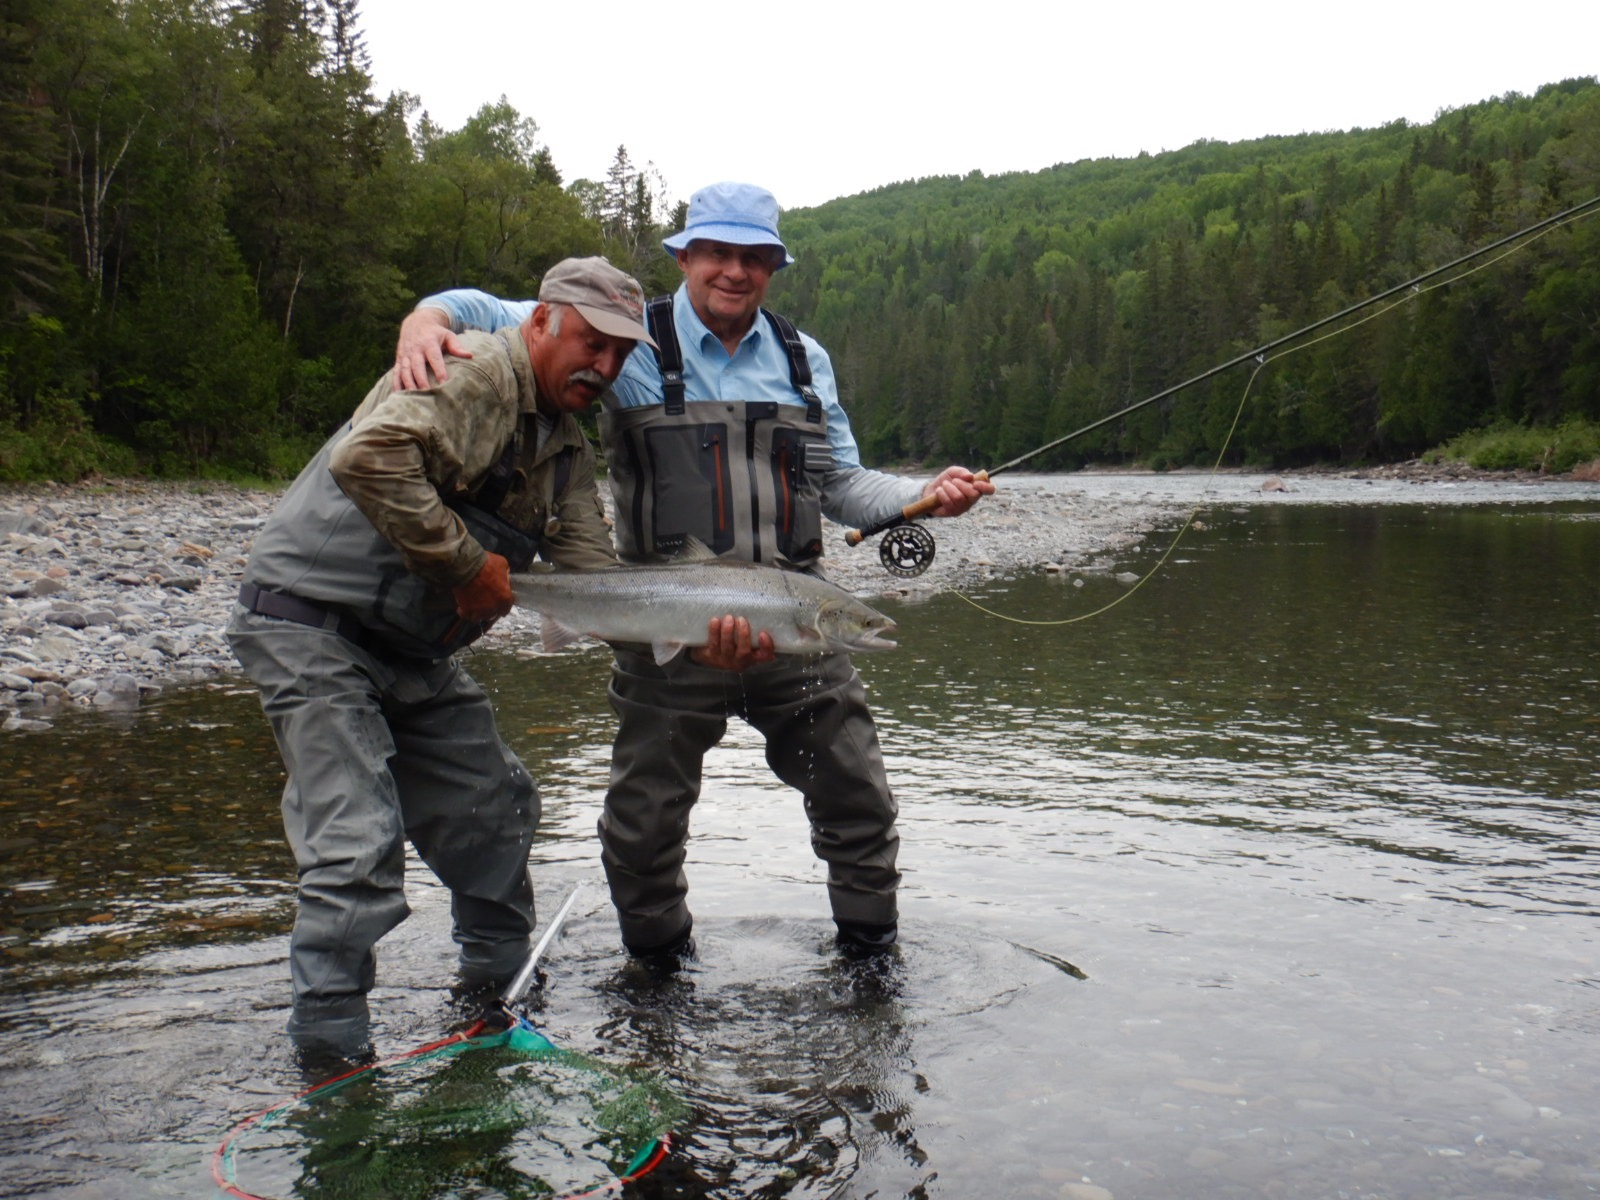 Long time Club guest Sheldon Aaron (right) landed this fine salmon on his first day out, congratulations Sheldon!